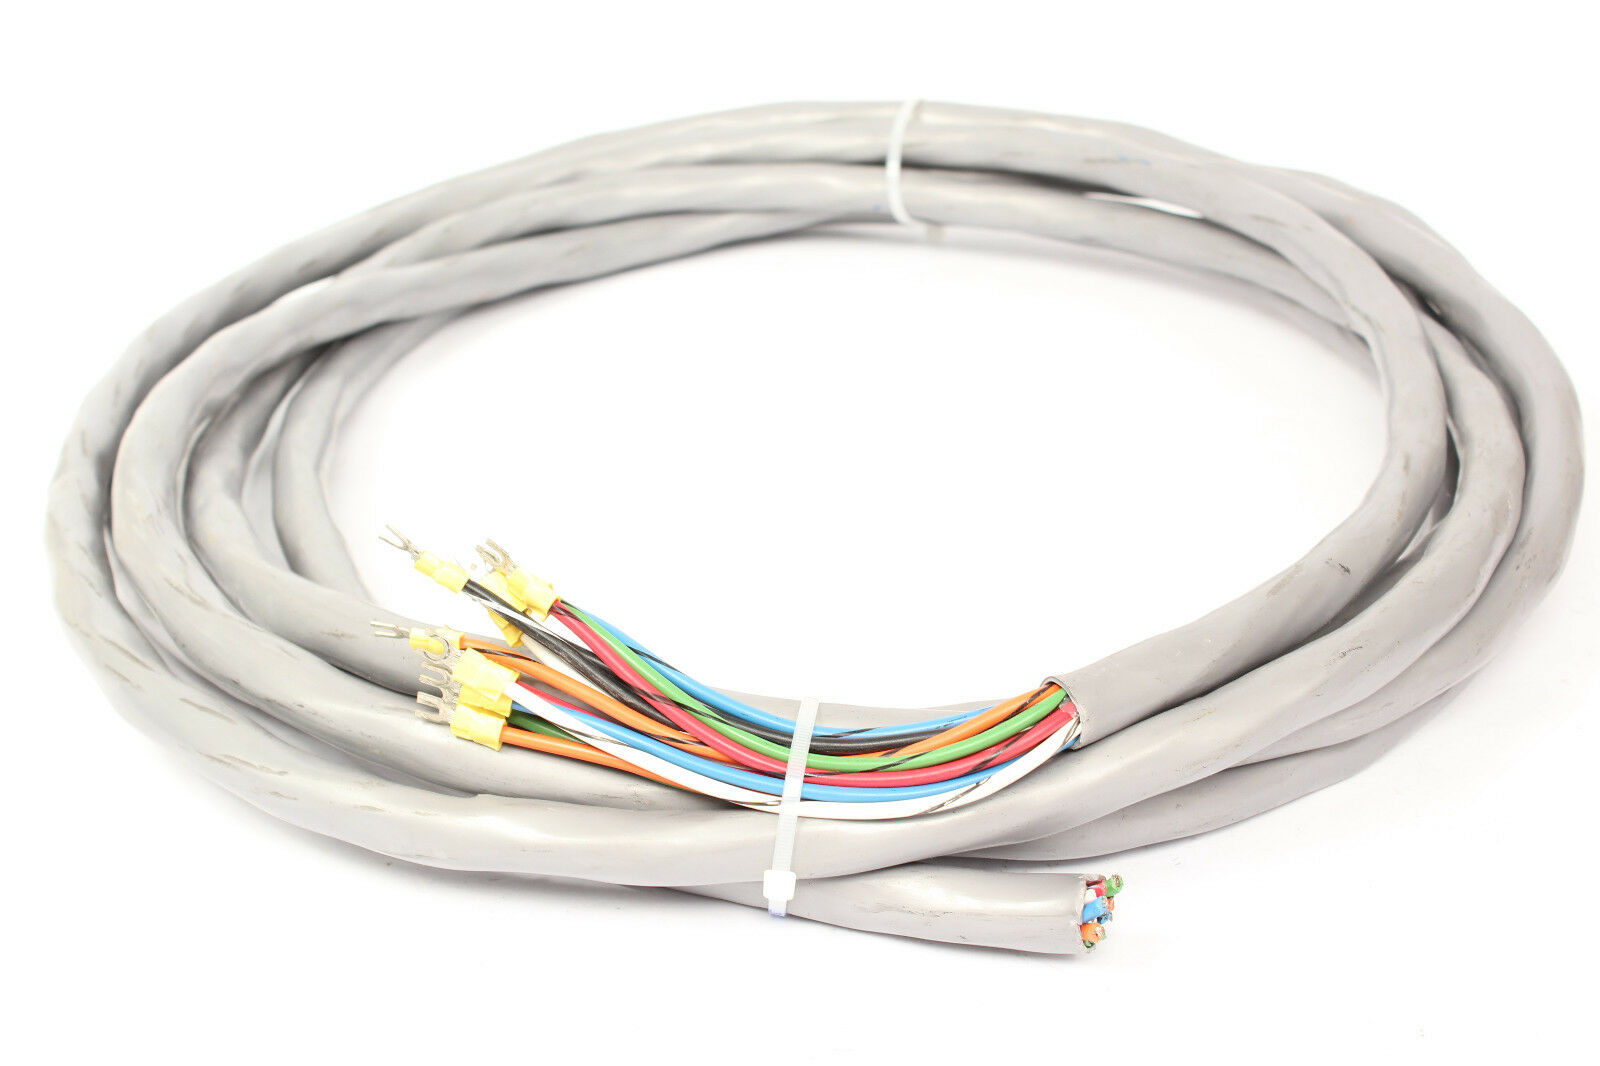 Belden 8629 12-Conductor Snake Cable Bulk Bare Unterminated 32'